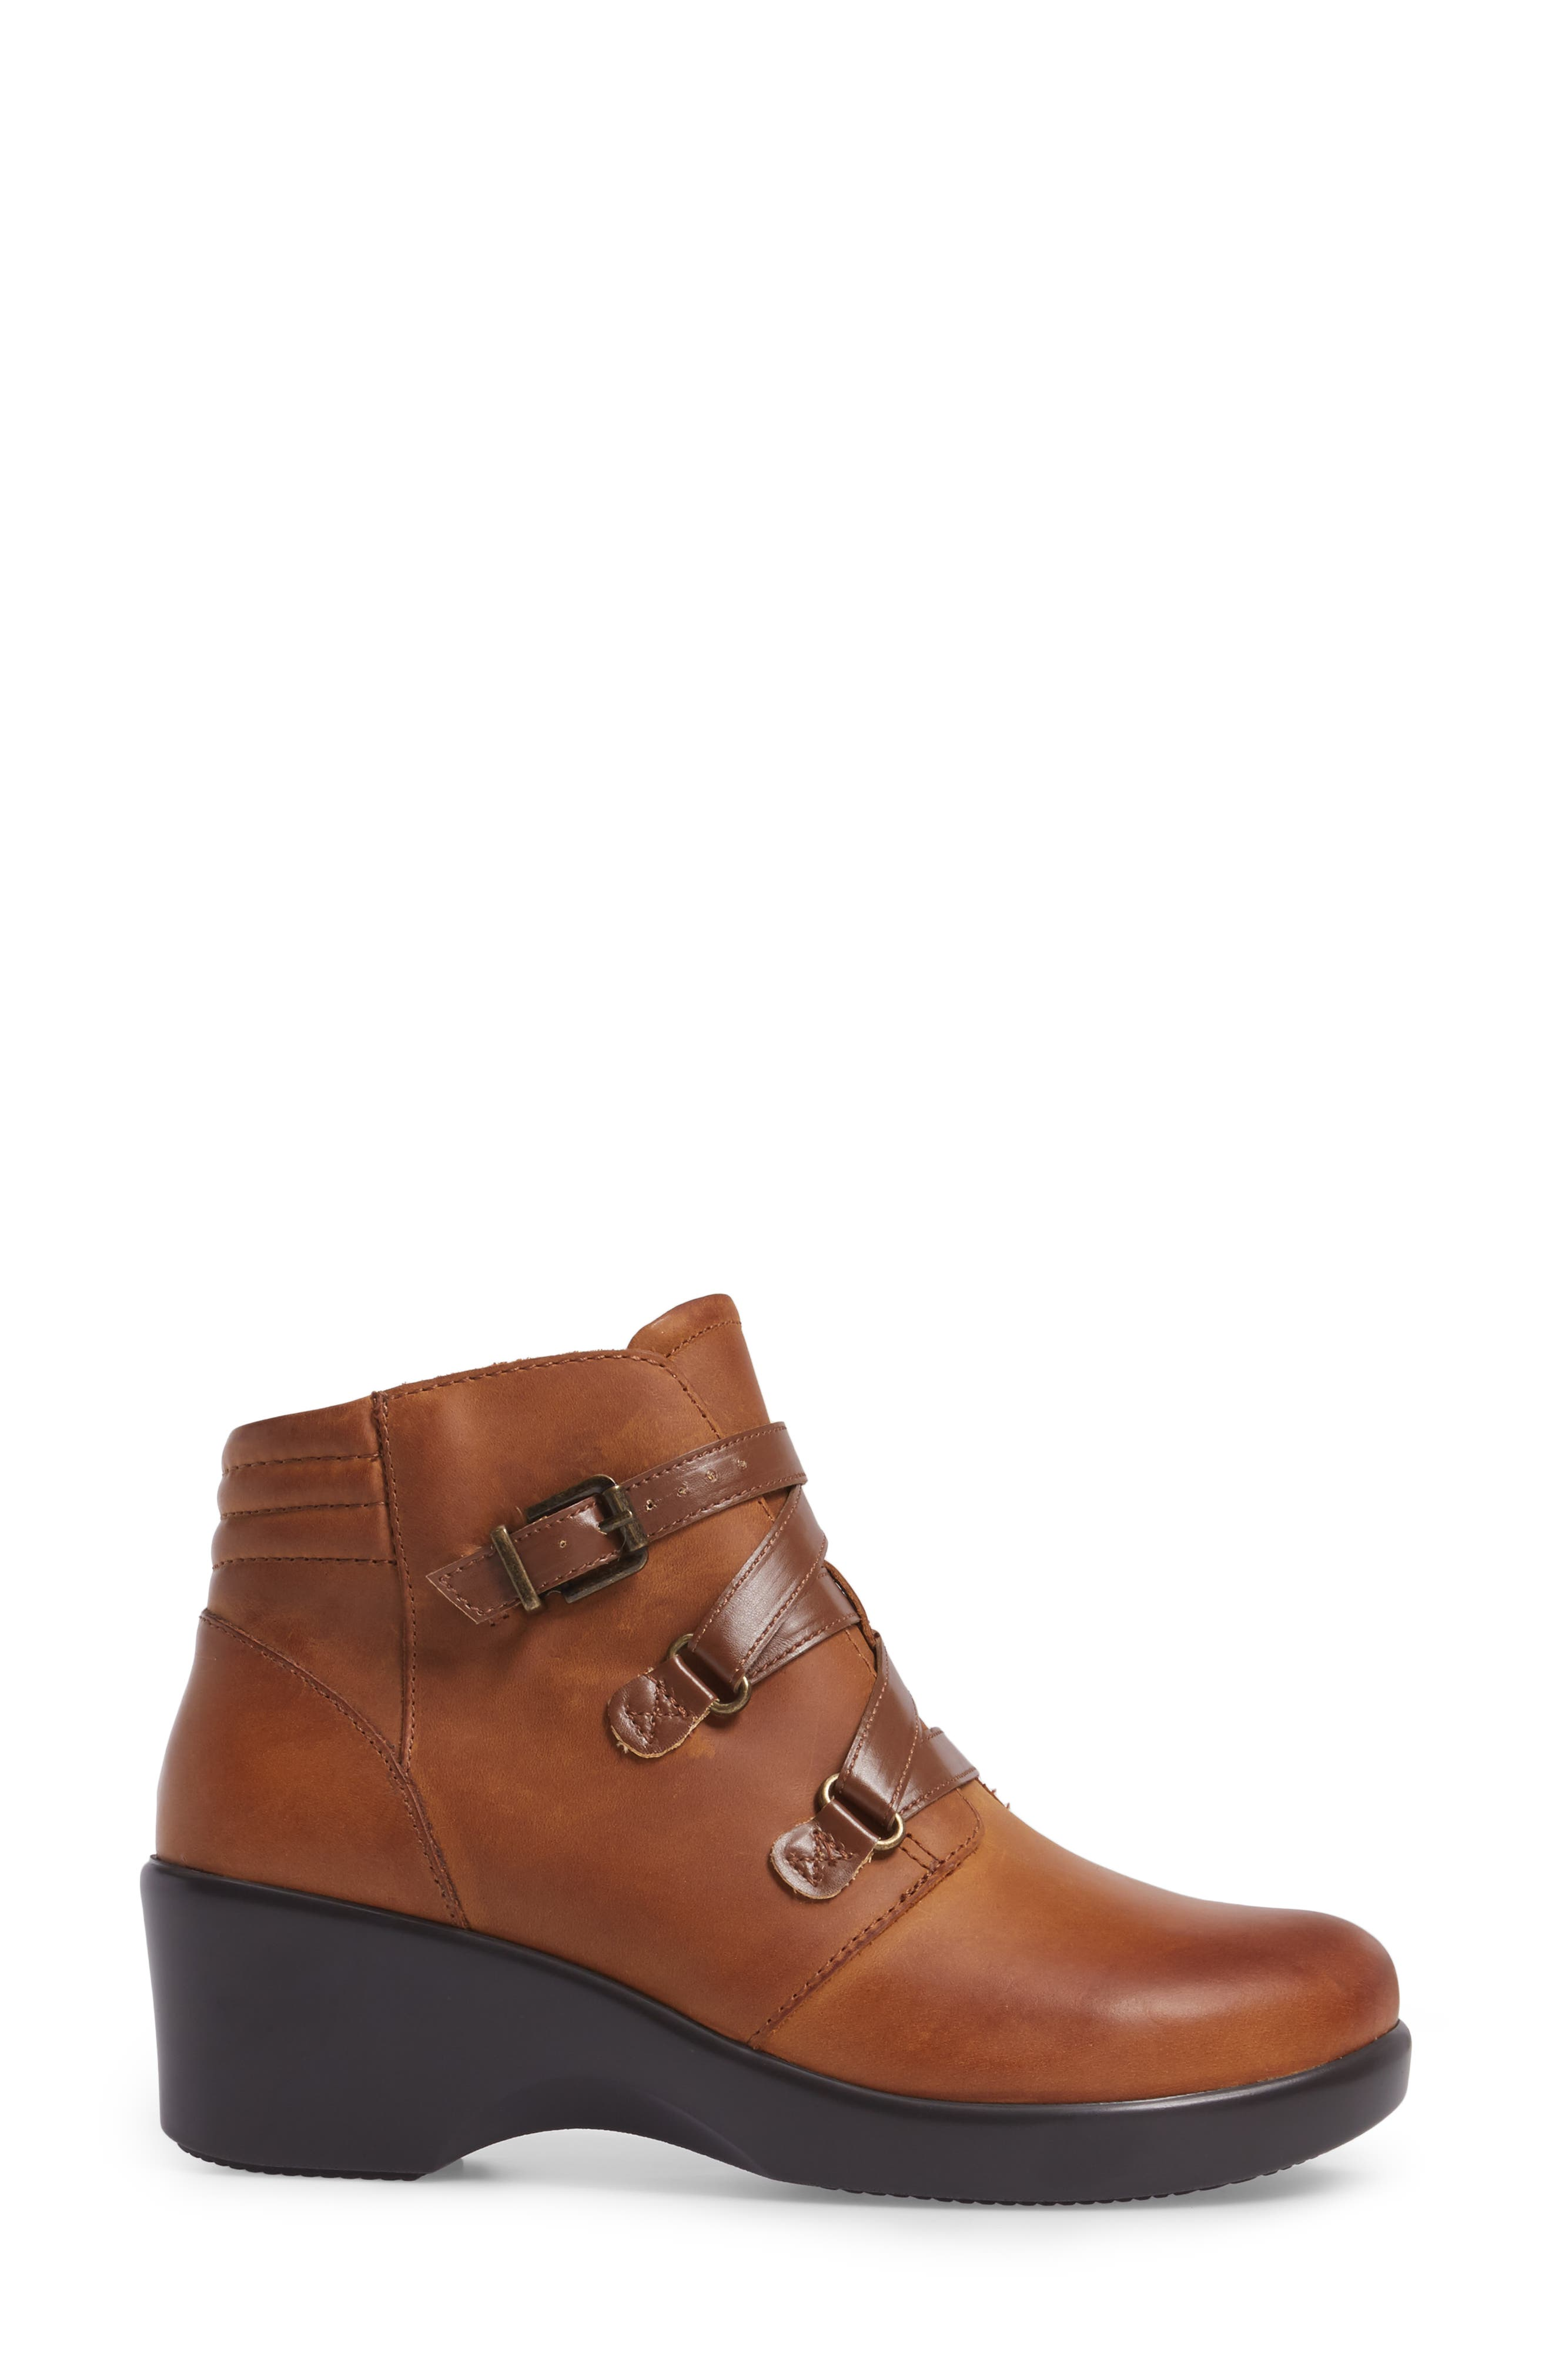 Indi Demi Wedge Bootie,                             Alternate thumbnail 3, color,                             Walnut Leather